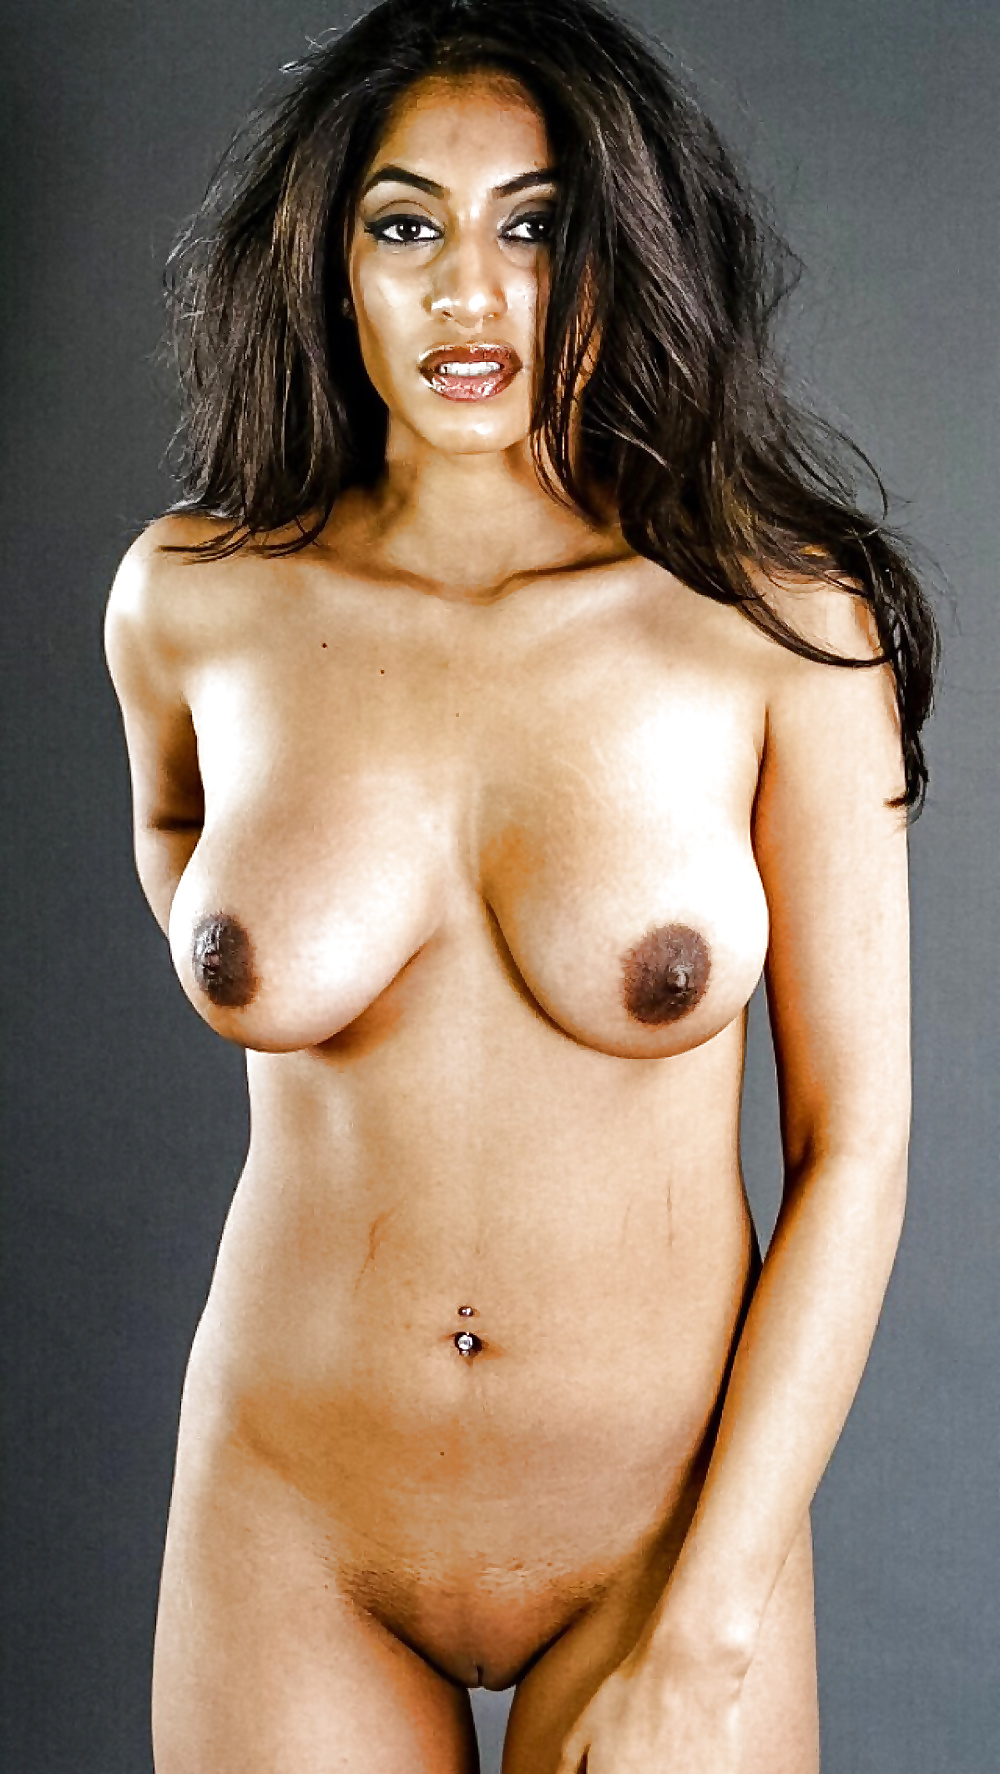 Nude mixed women pics, brooke shields xxx movies